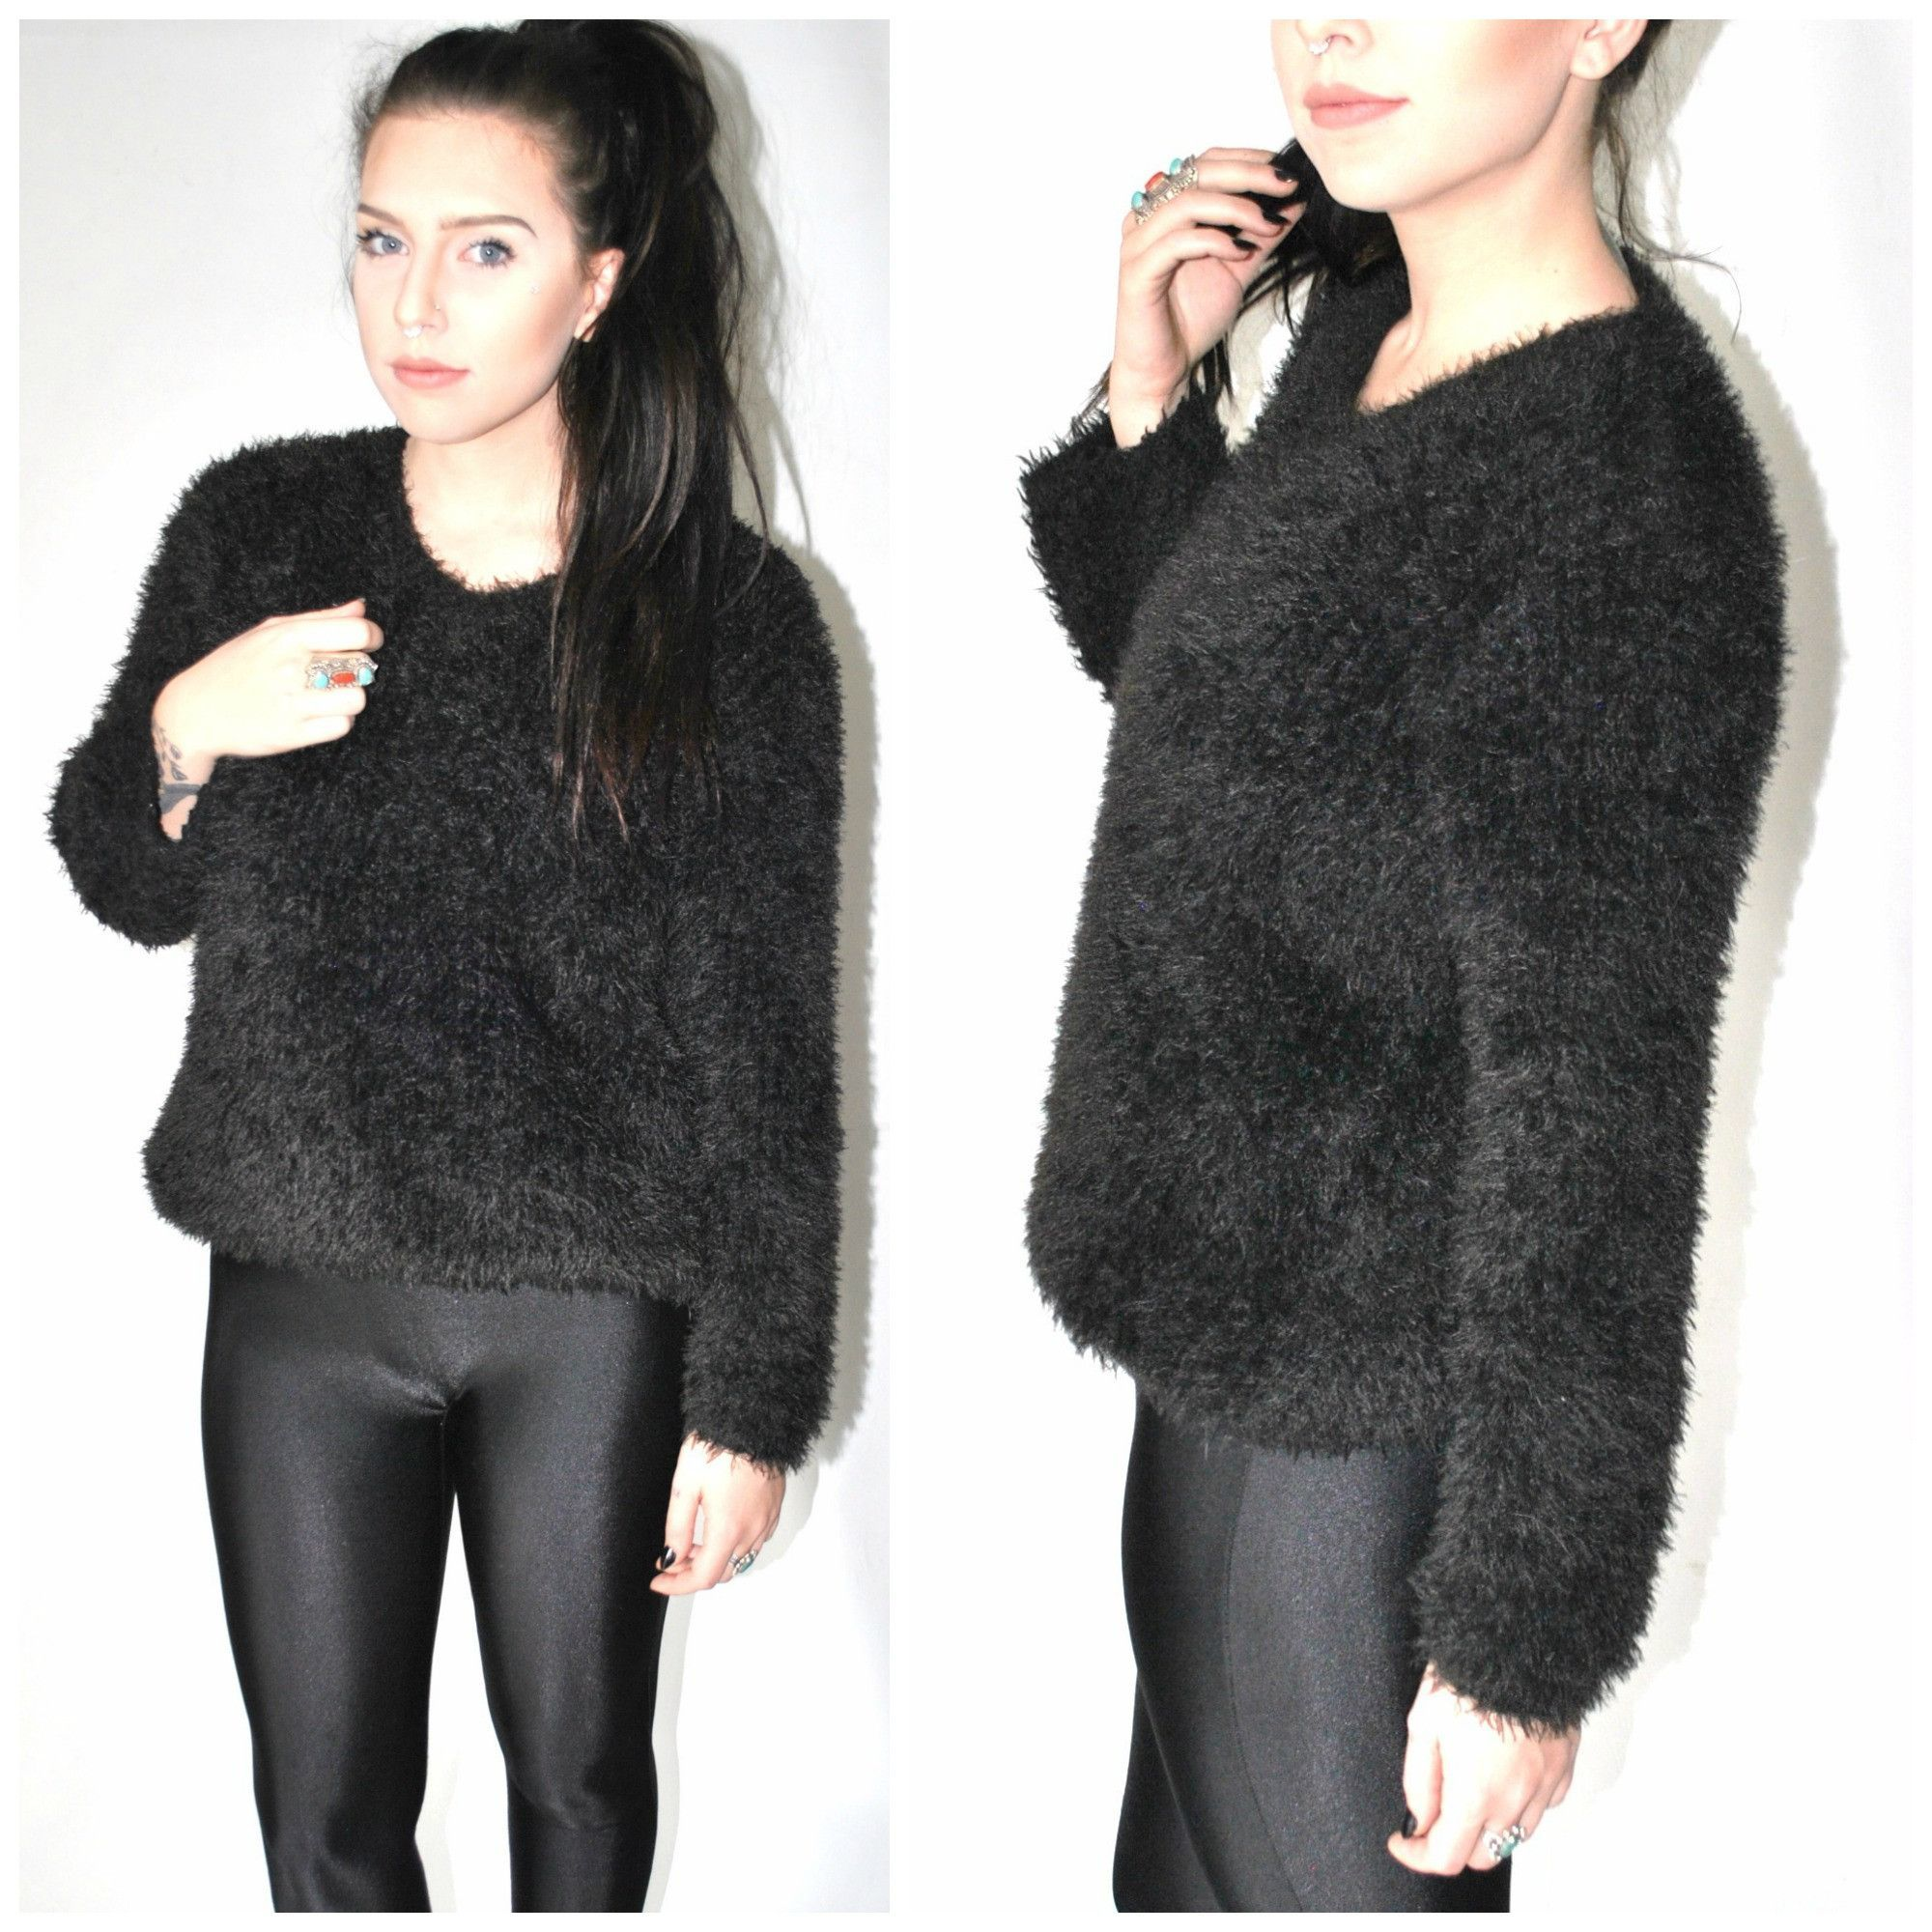 fuzzy black 90s club kid cropped sweater medium | My childhood ...